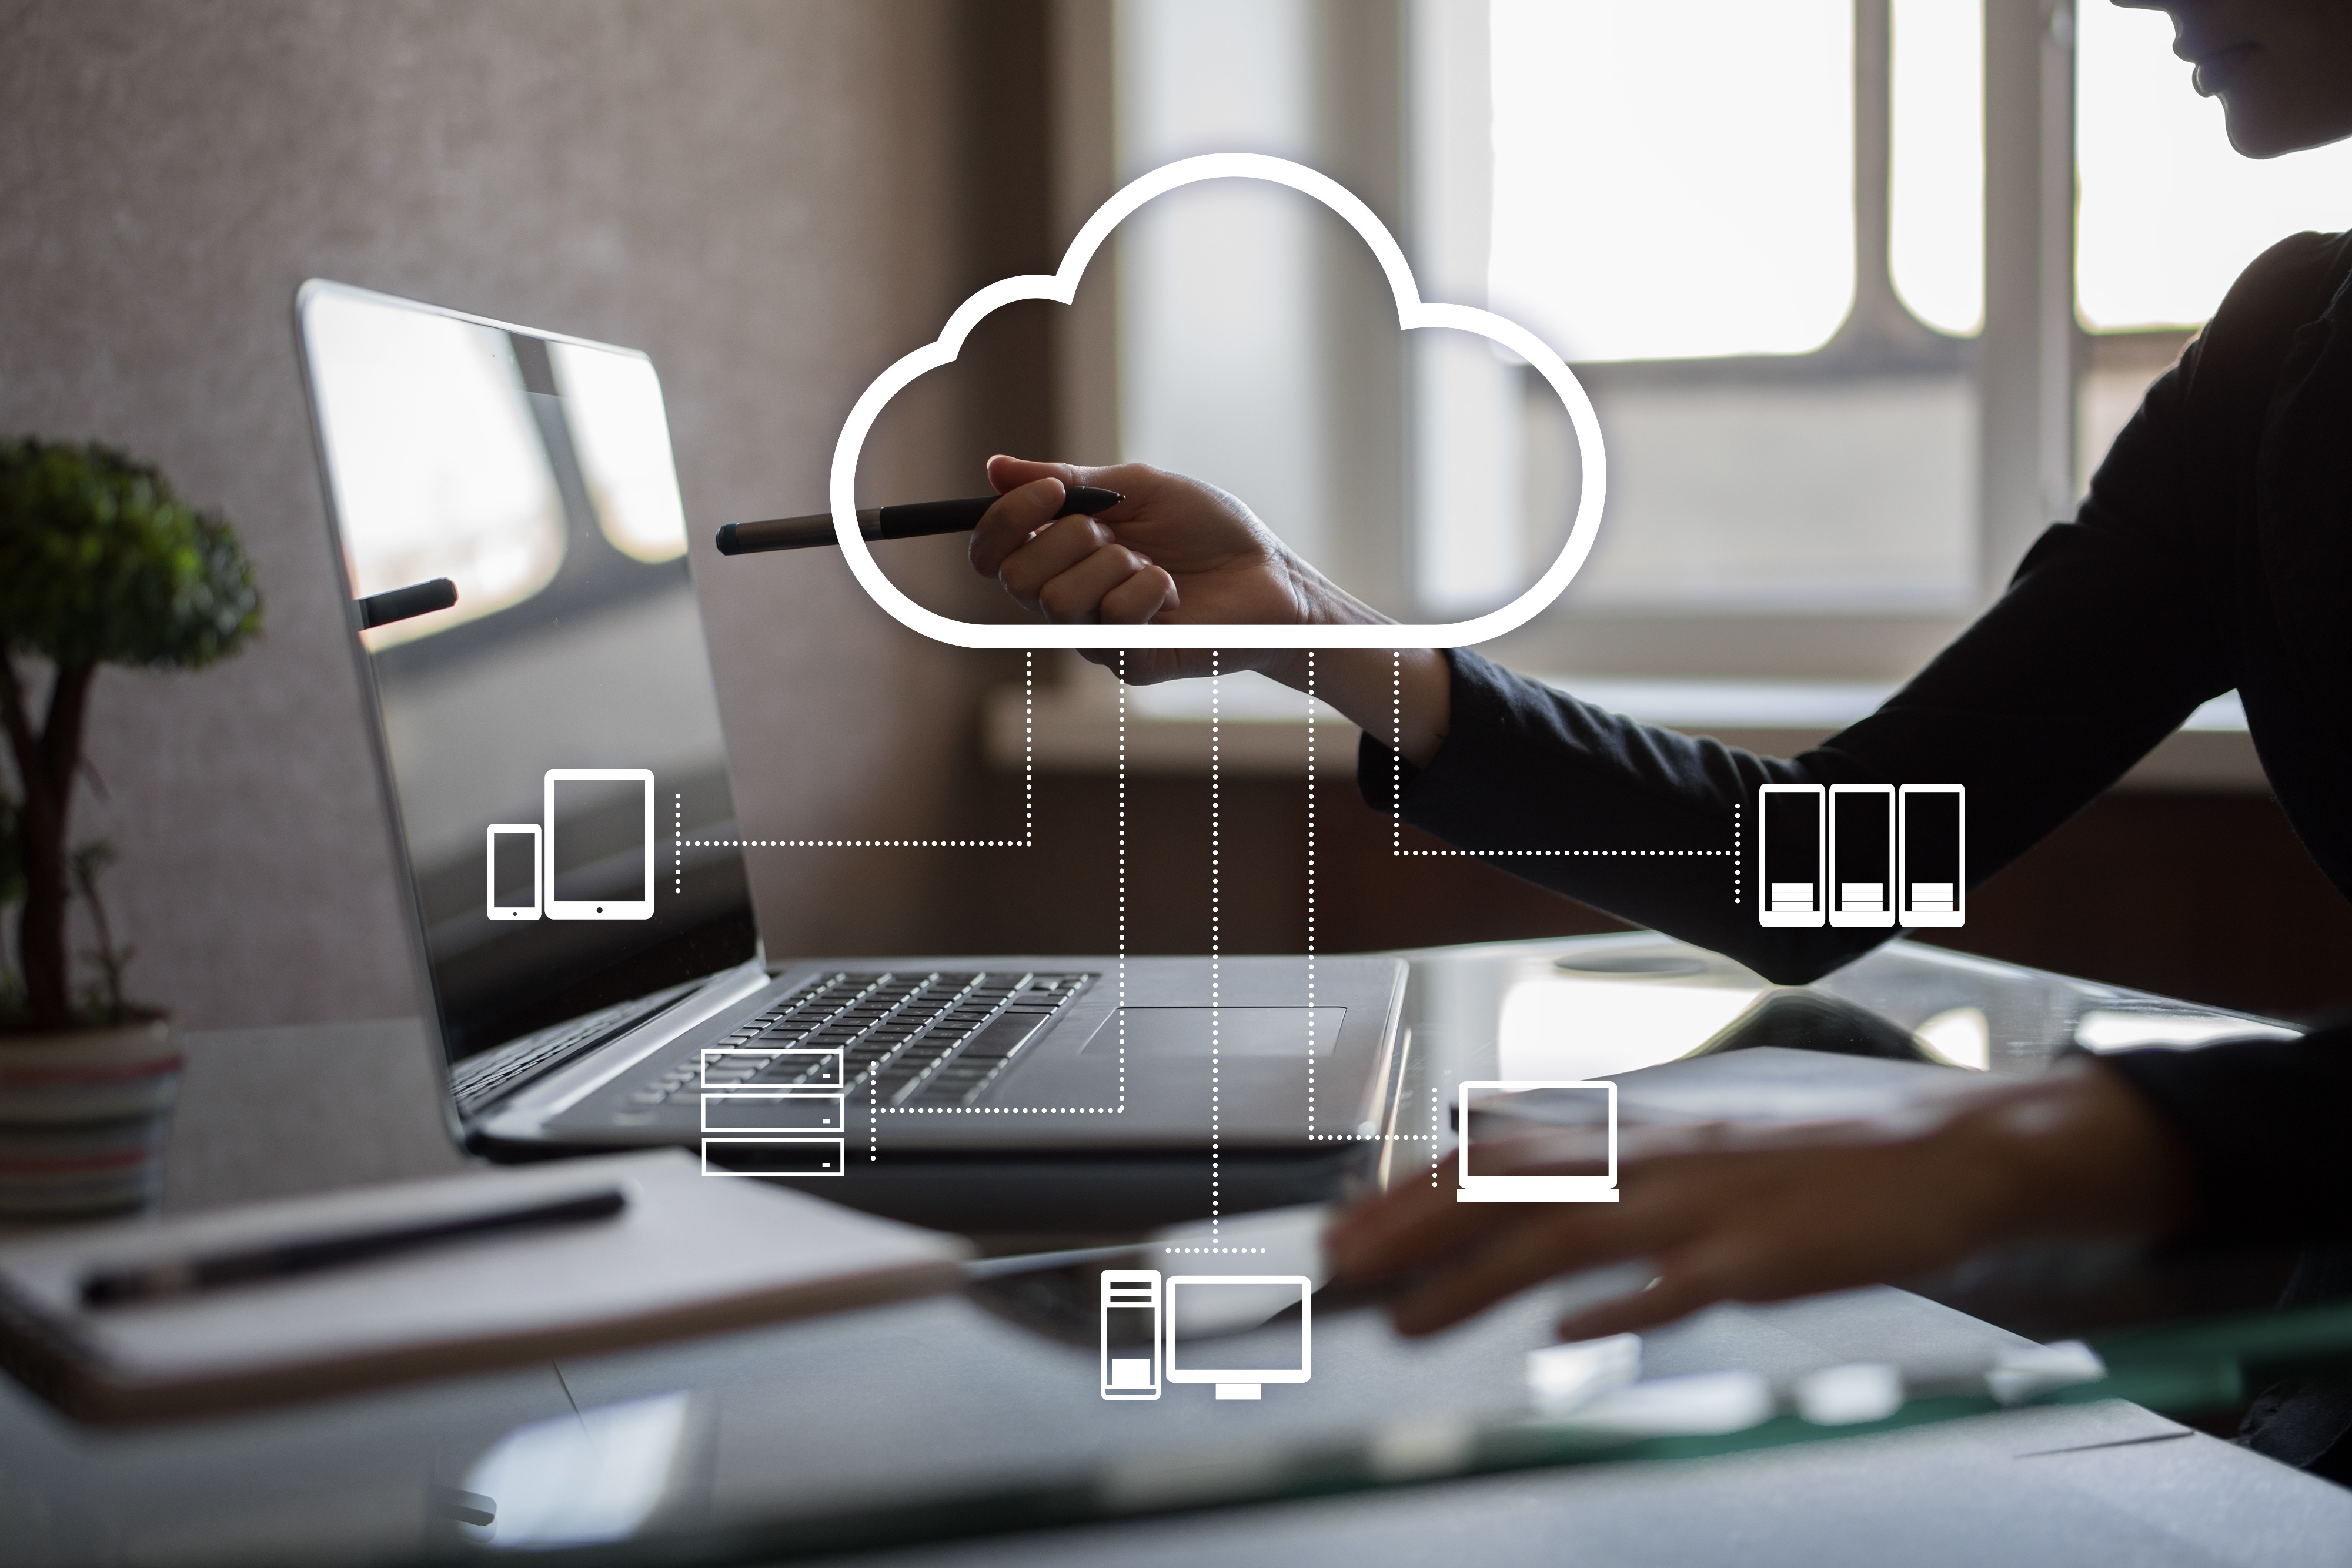 Effective cloud strategy